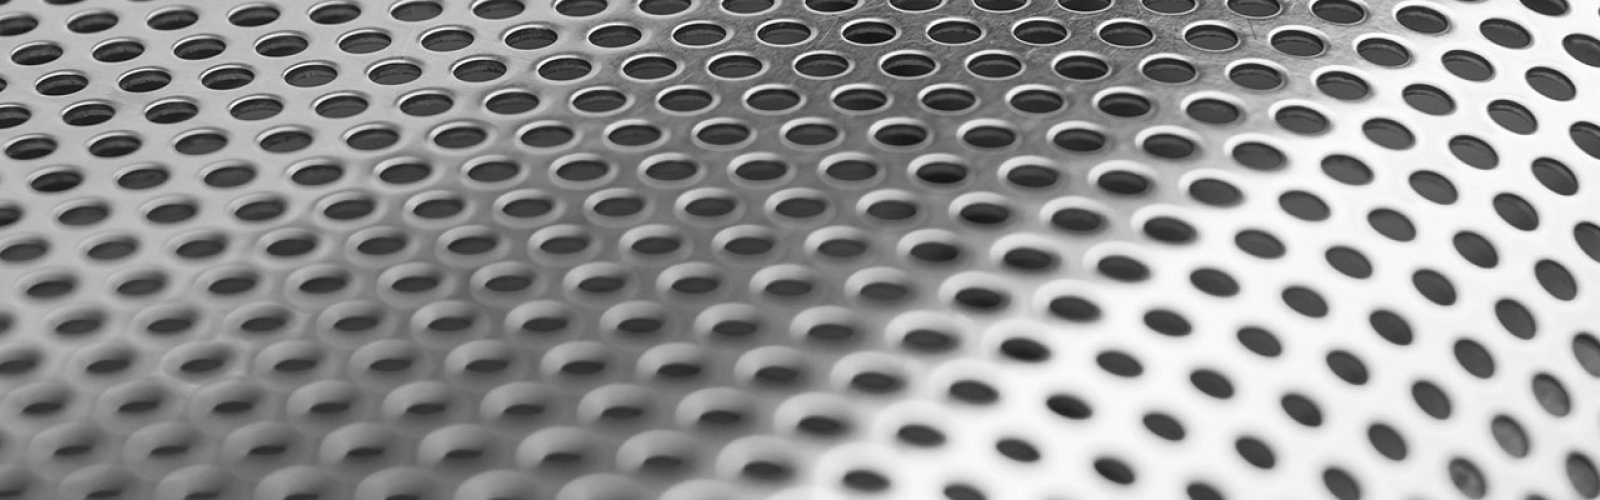 Perforated Metal Patterns Round Square Slot And Custom